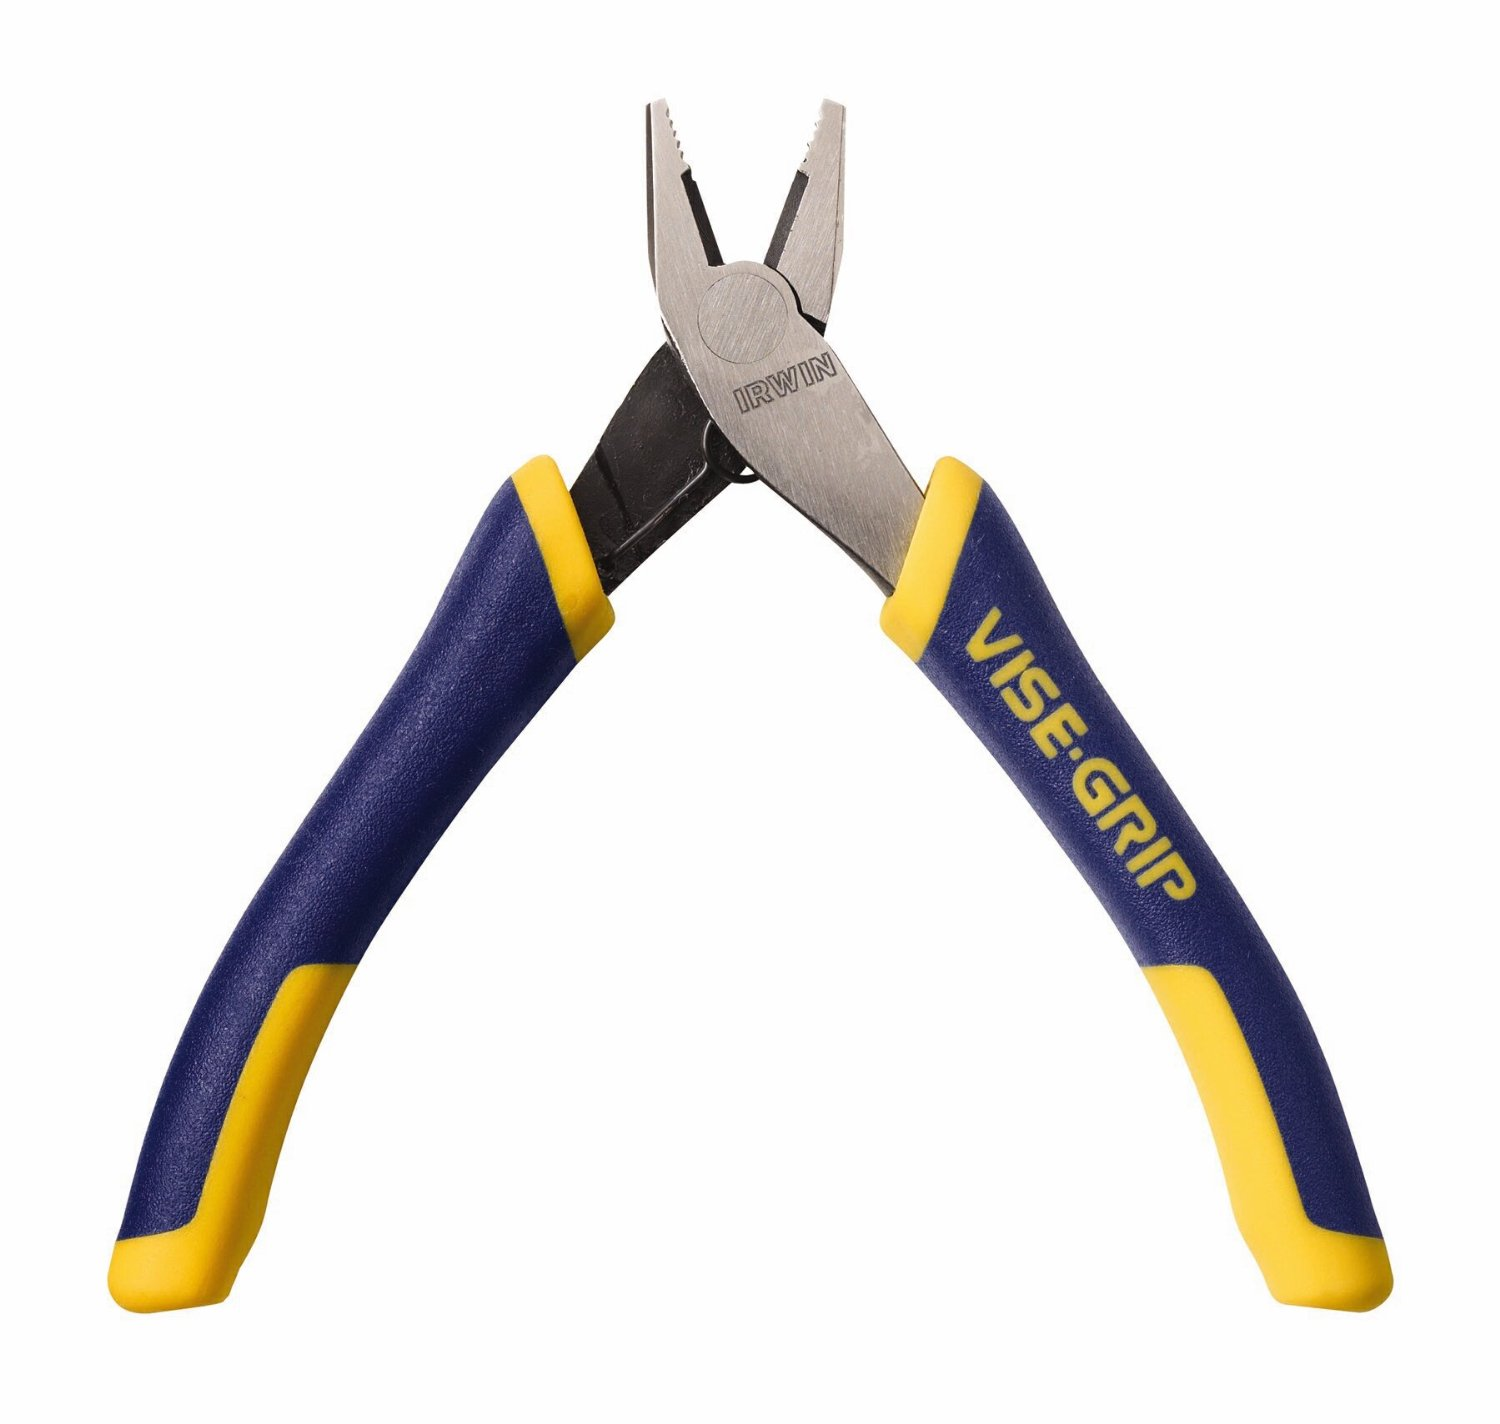 IRWIN 2078915 VISE-GRIP PLIERS LINEMAN'S WITH SPRING - 4 3/4 INCH